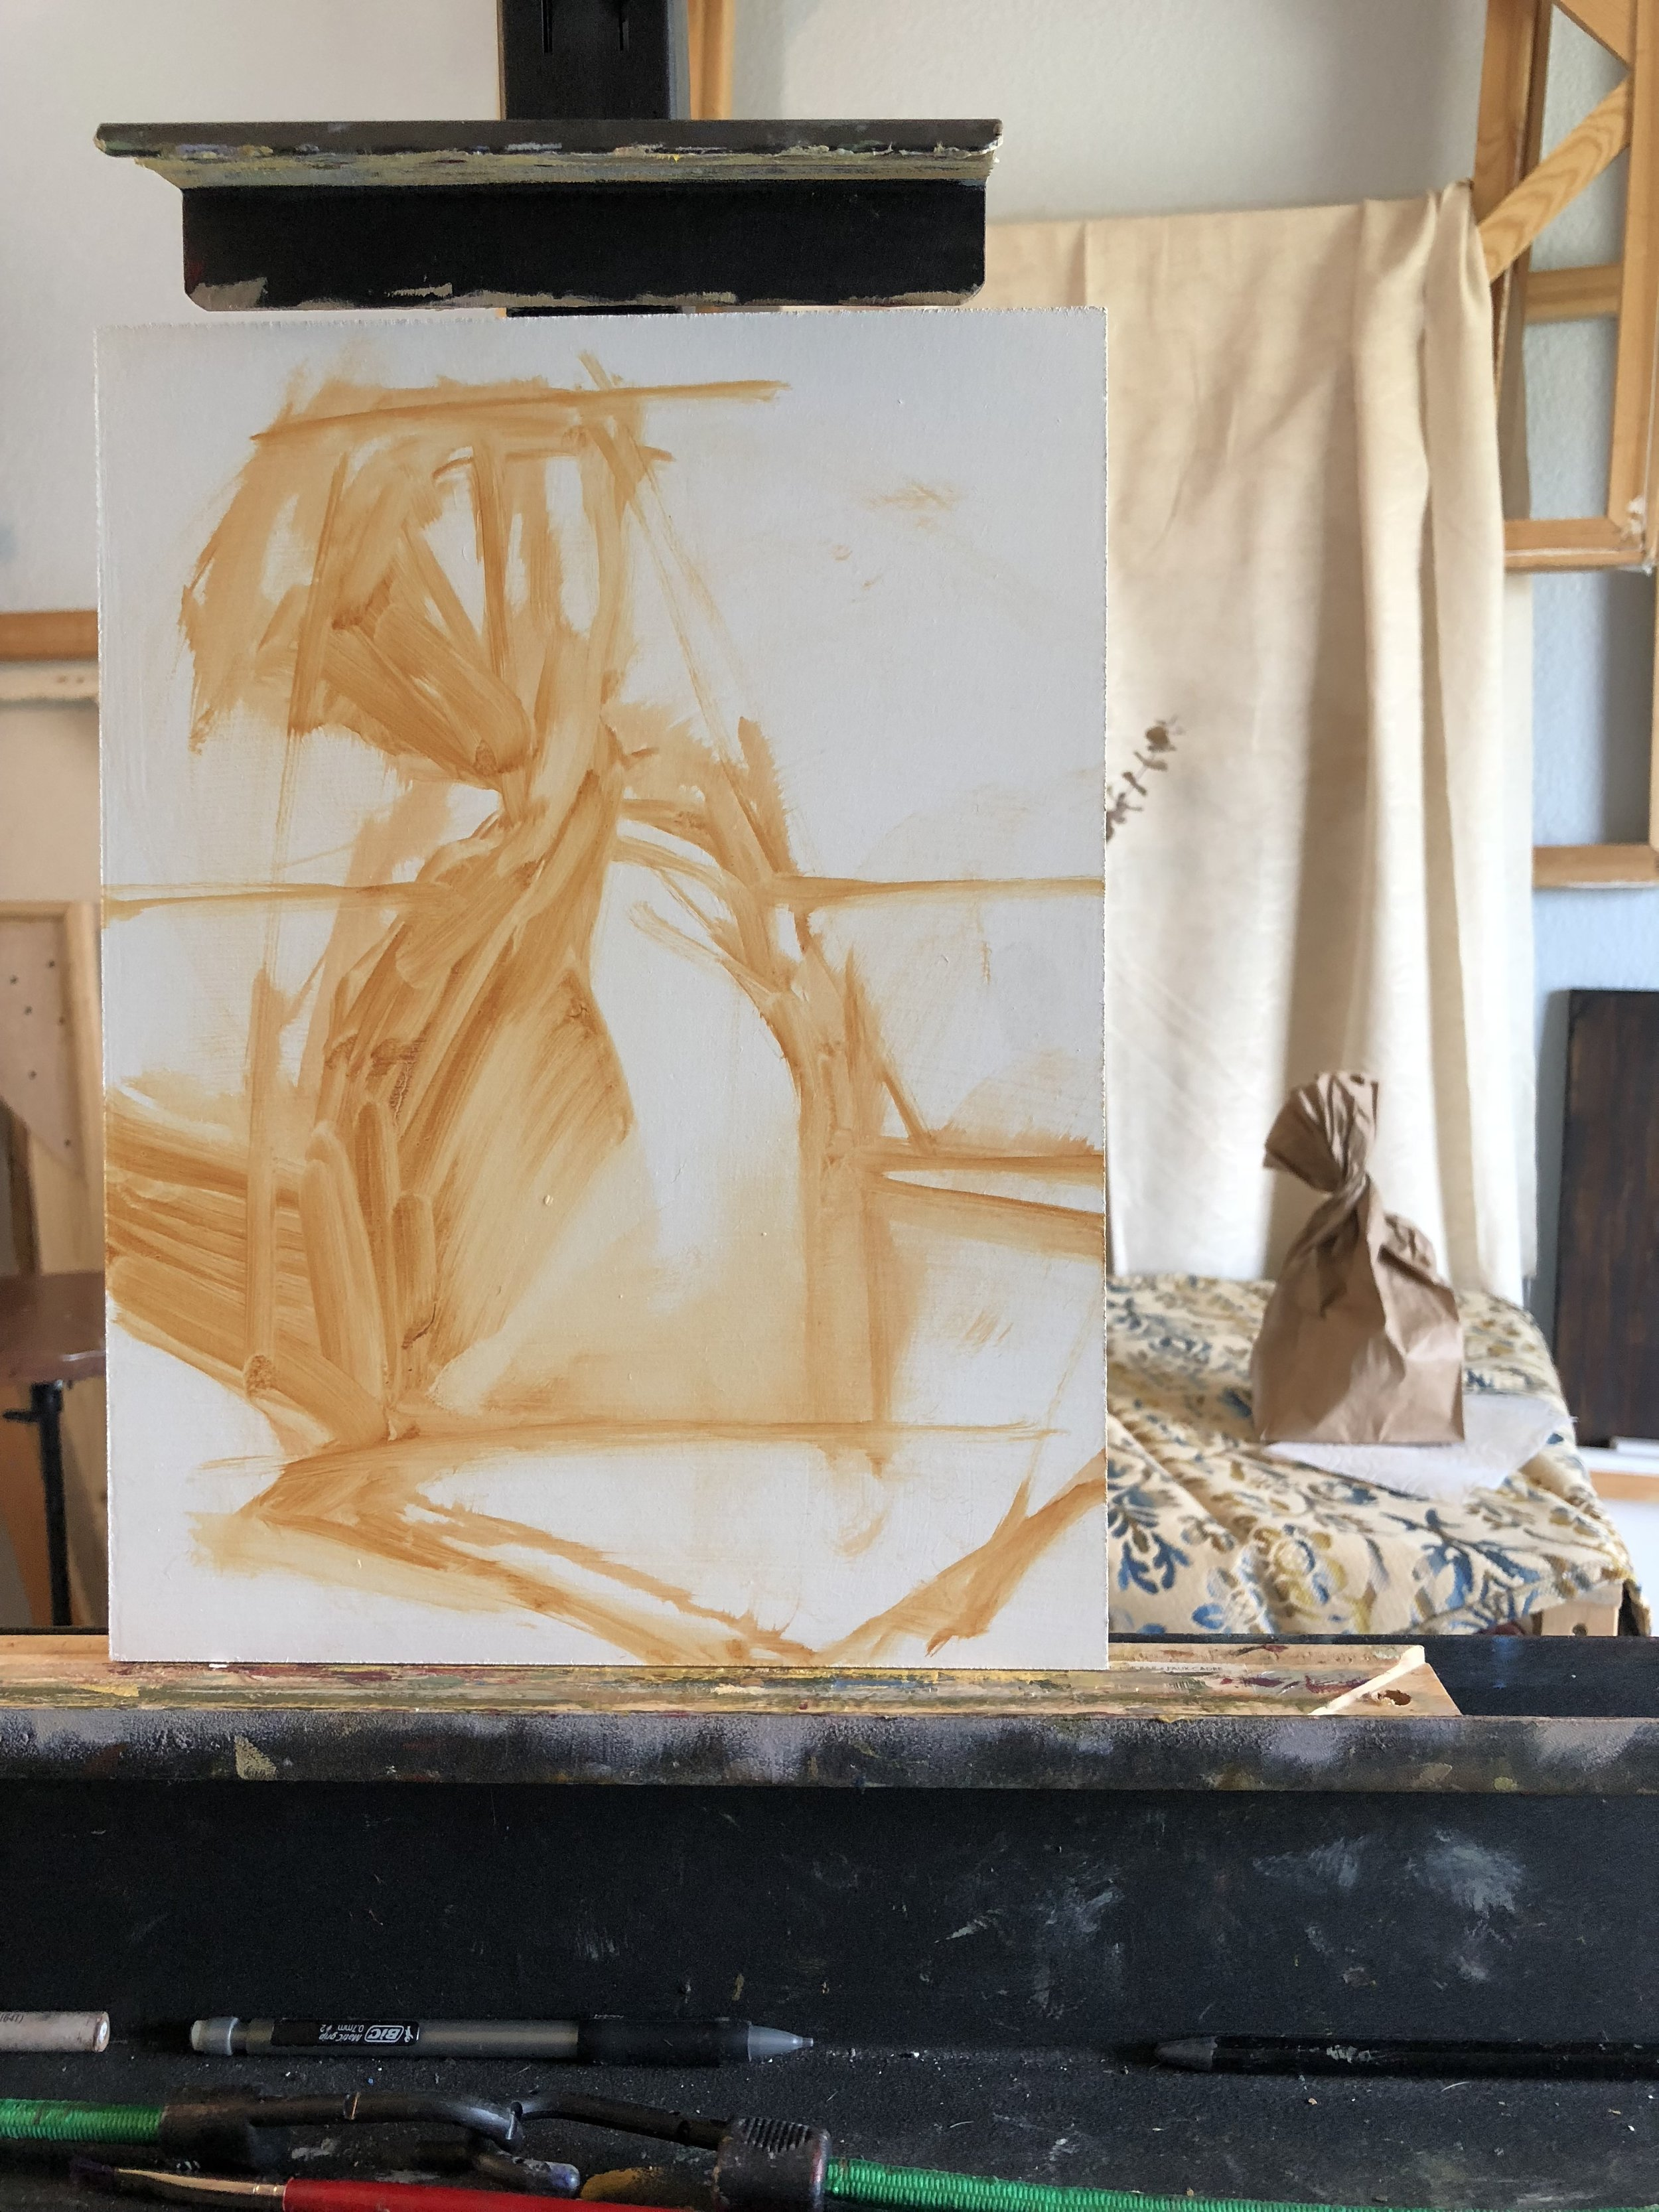 What's on the Easel?